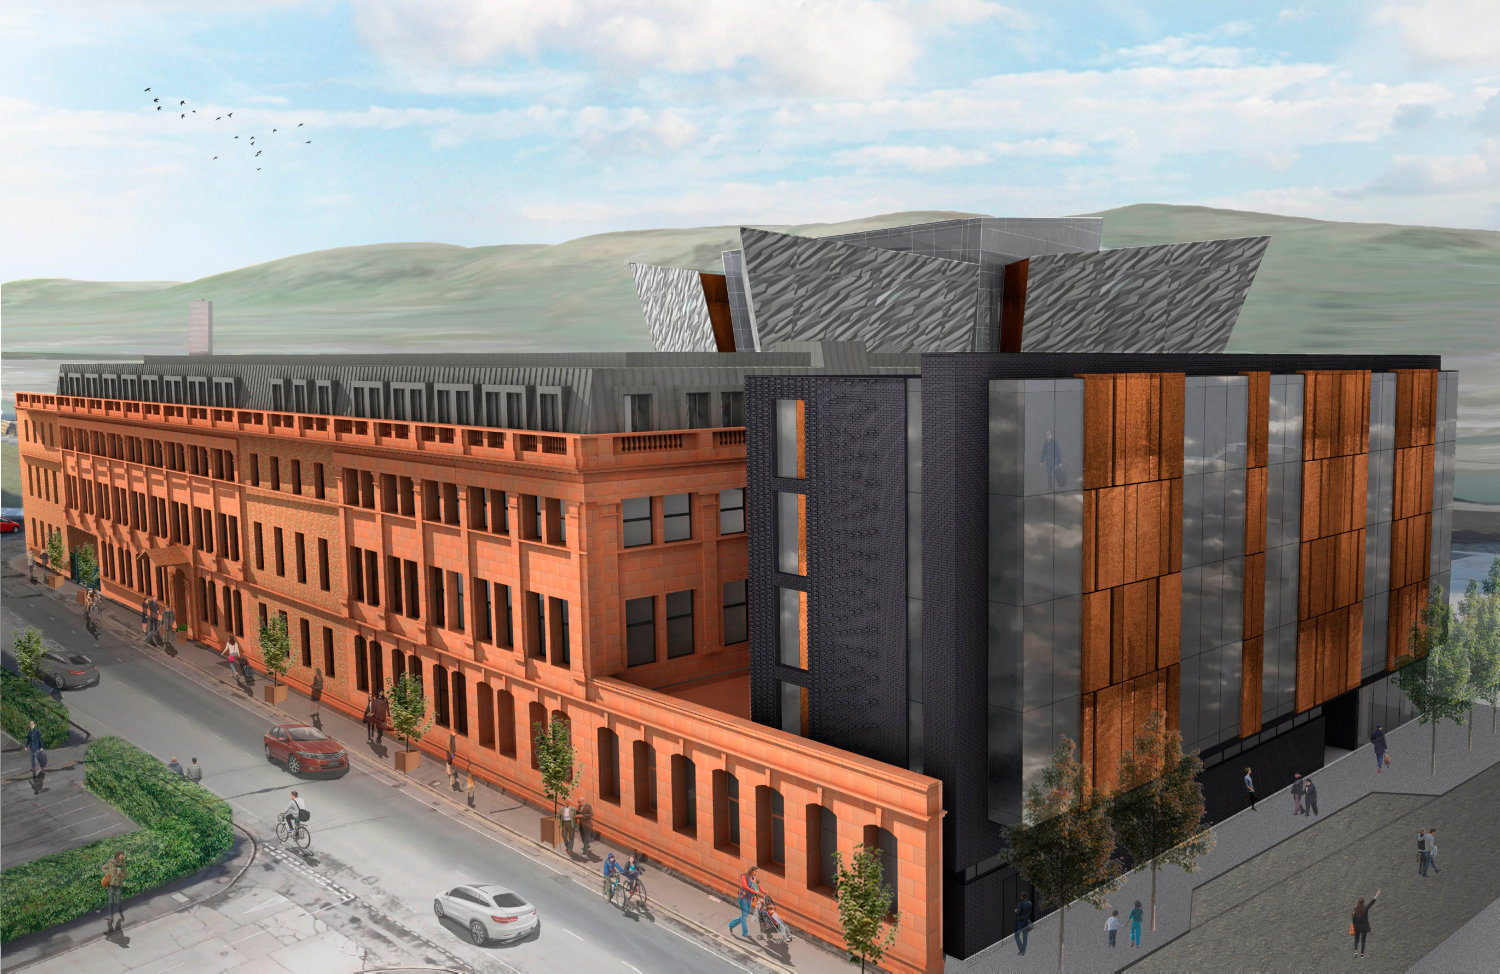 Titanic Hotel Belfast opens to the public for first time